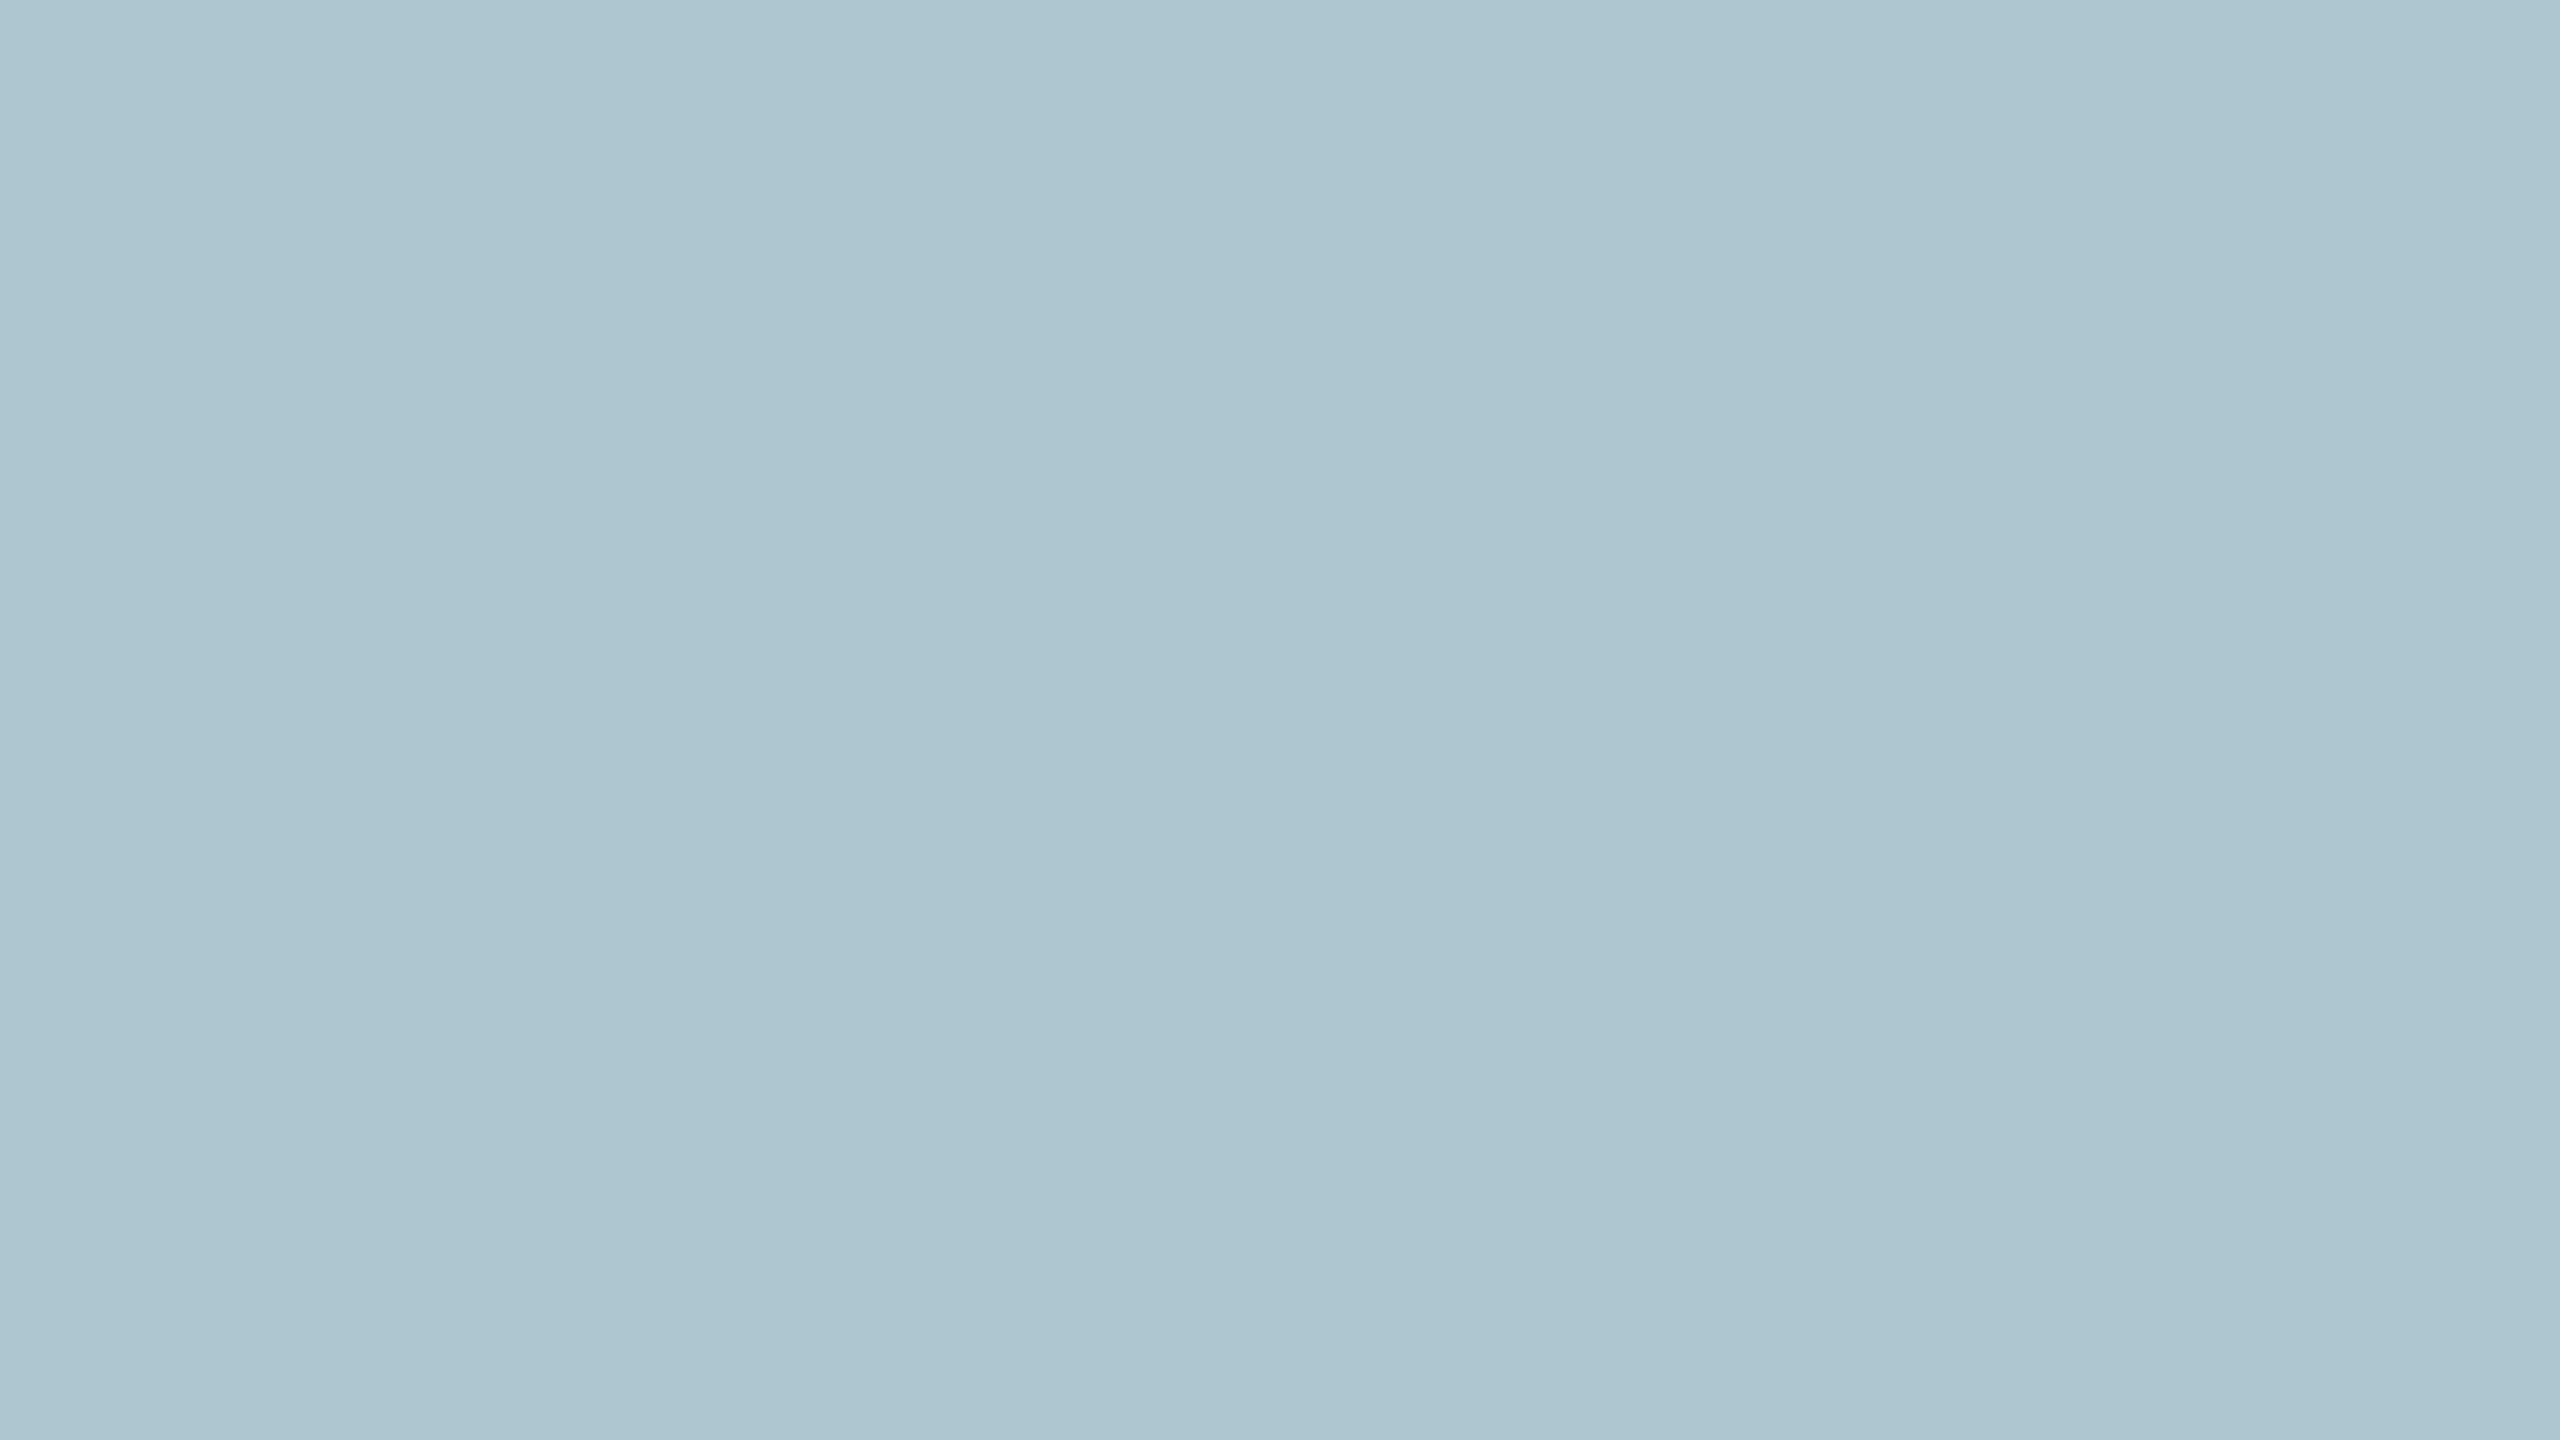 2560x1440 Pastel Blue Solid Color Background